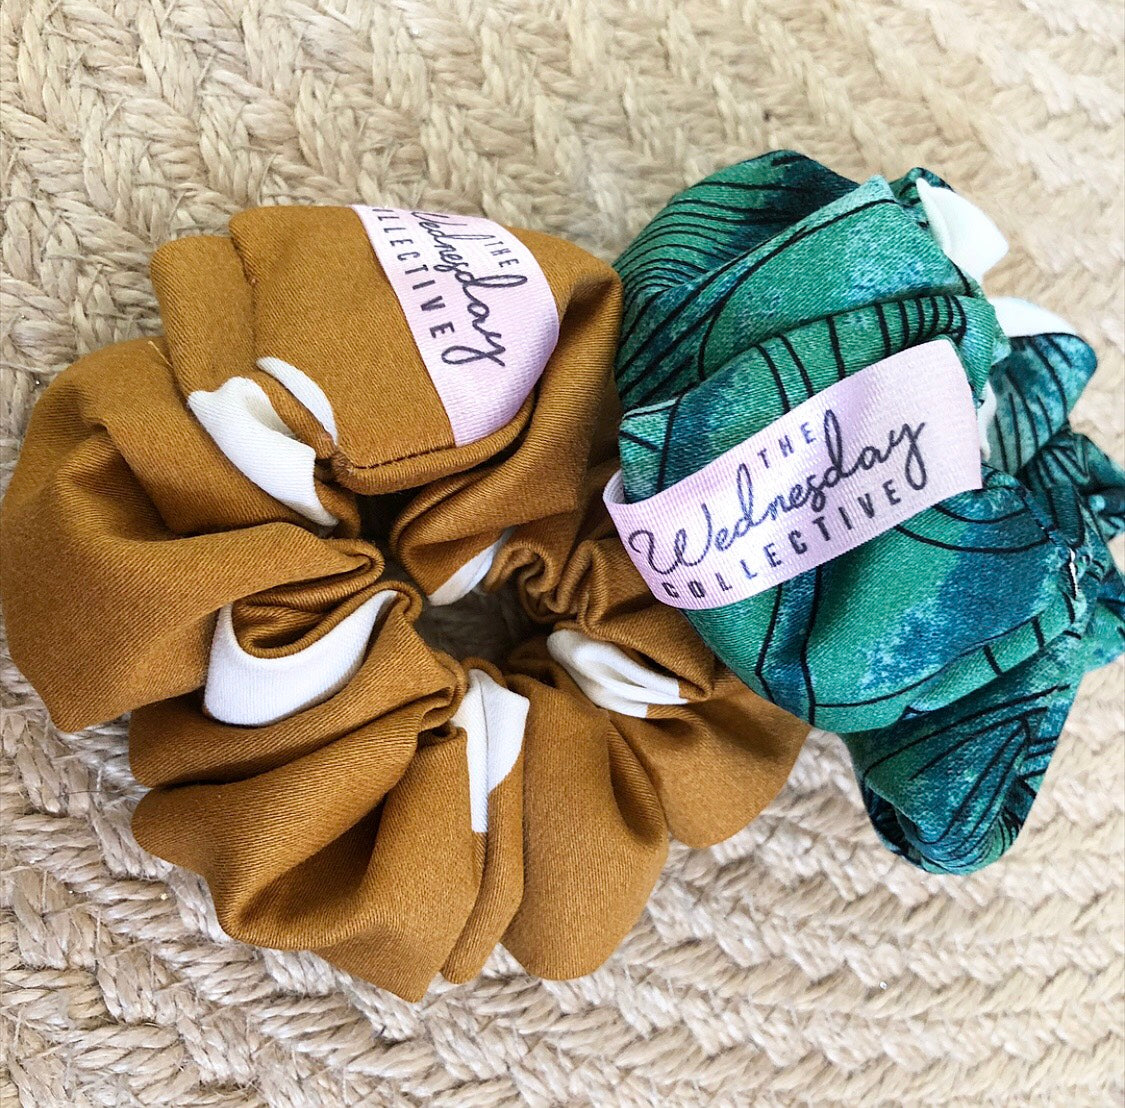 The Wednesday Collective Scrunchie